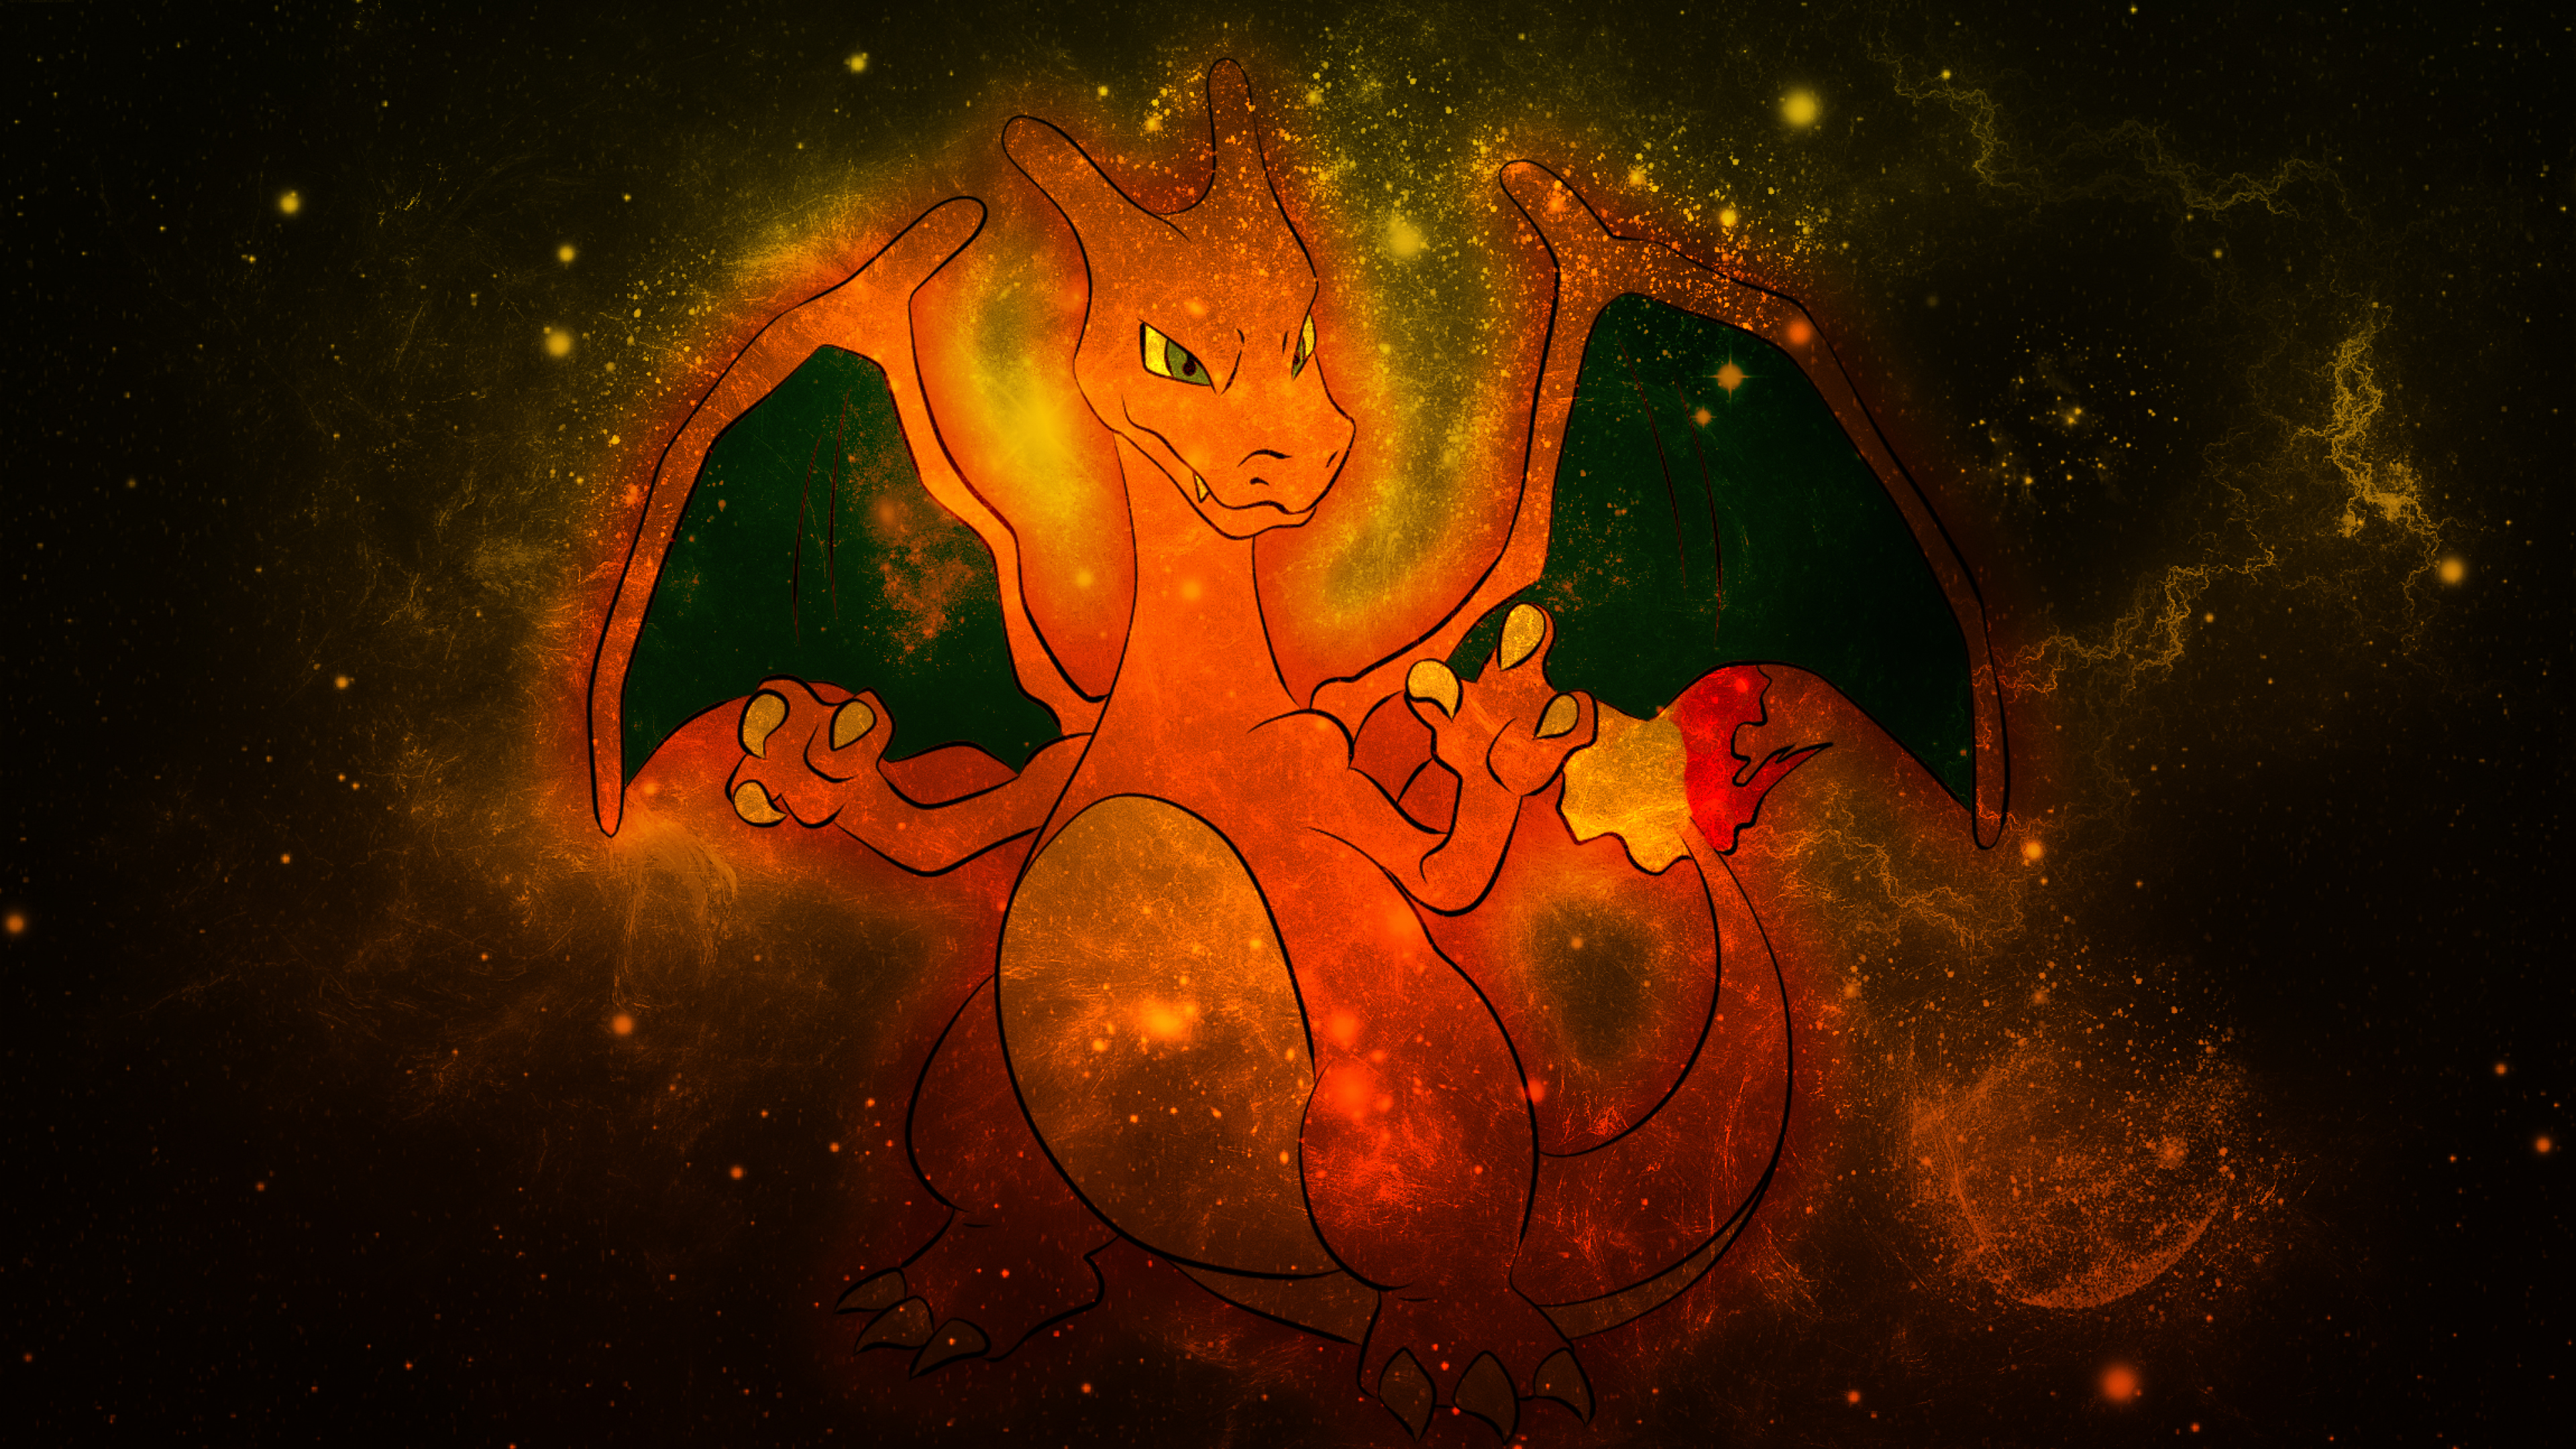 charizard computer wallpapers desktop backgrounds